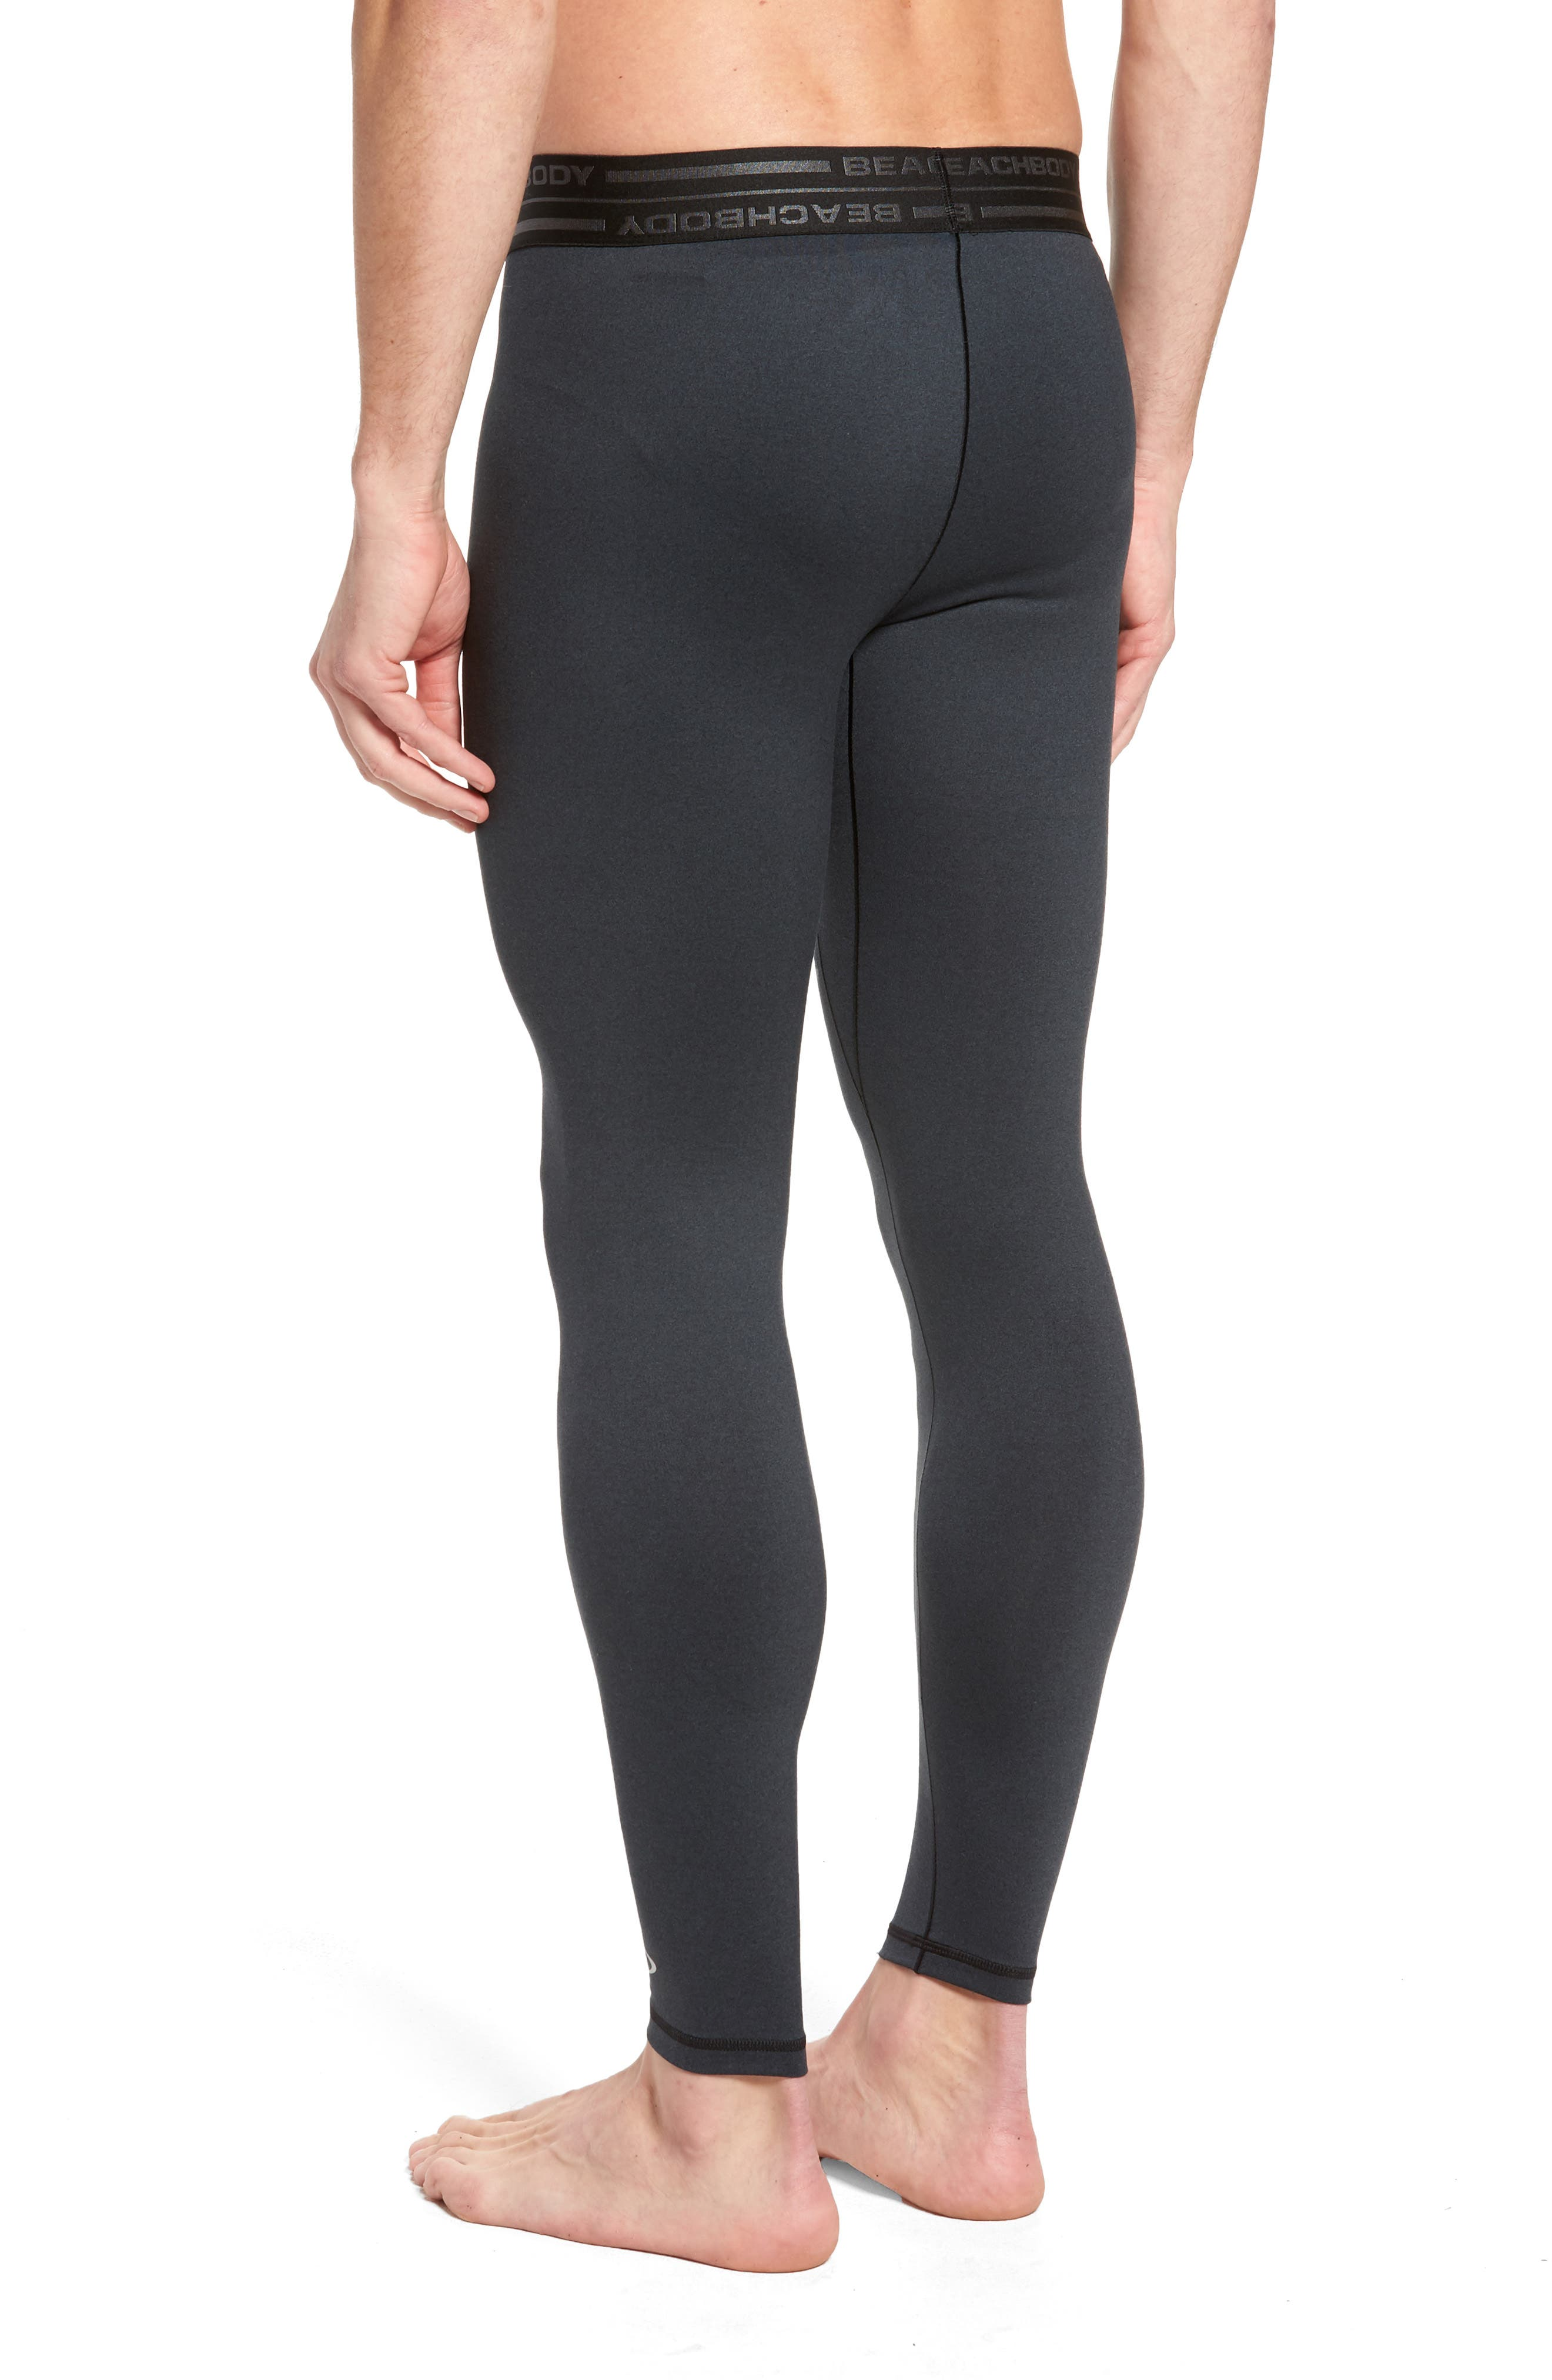 Energy Tights,                             Alternate thumbnail 2, color,                             001